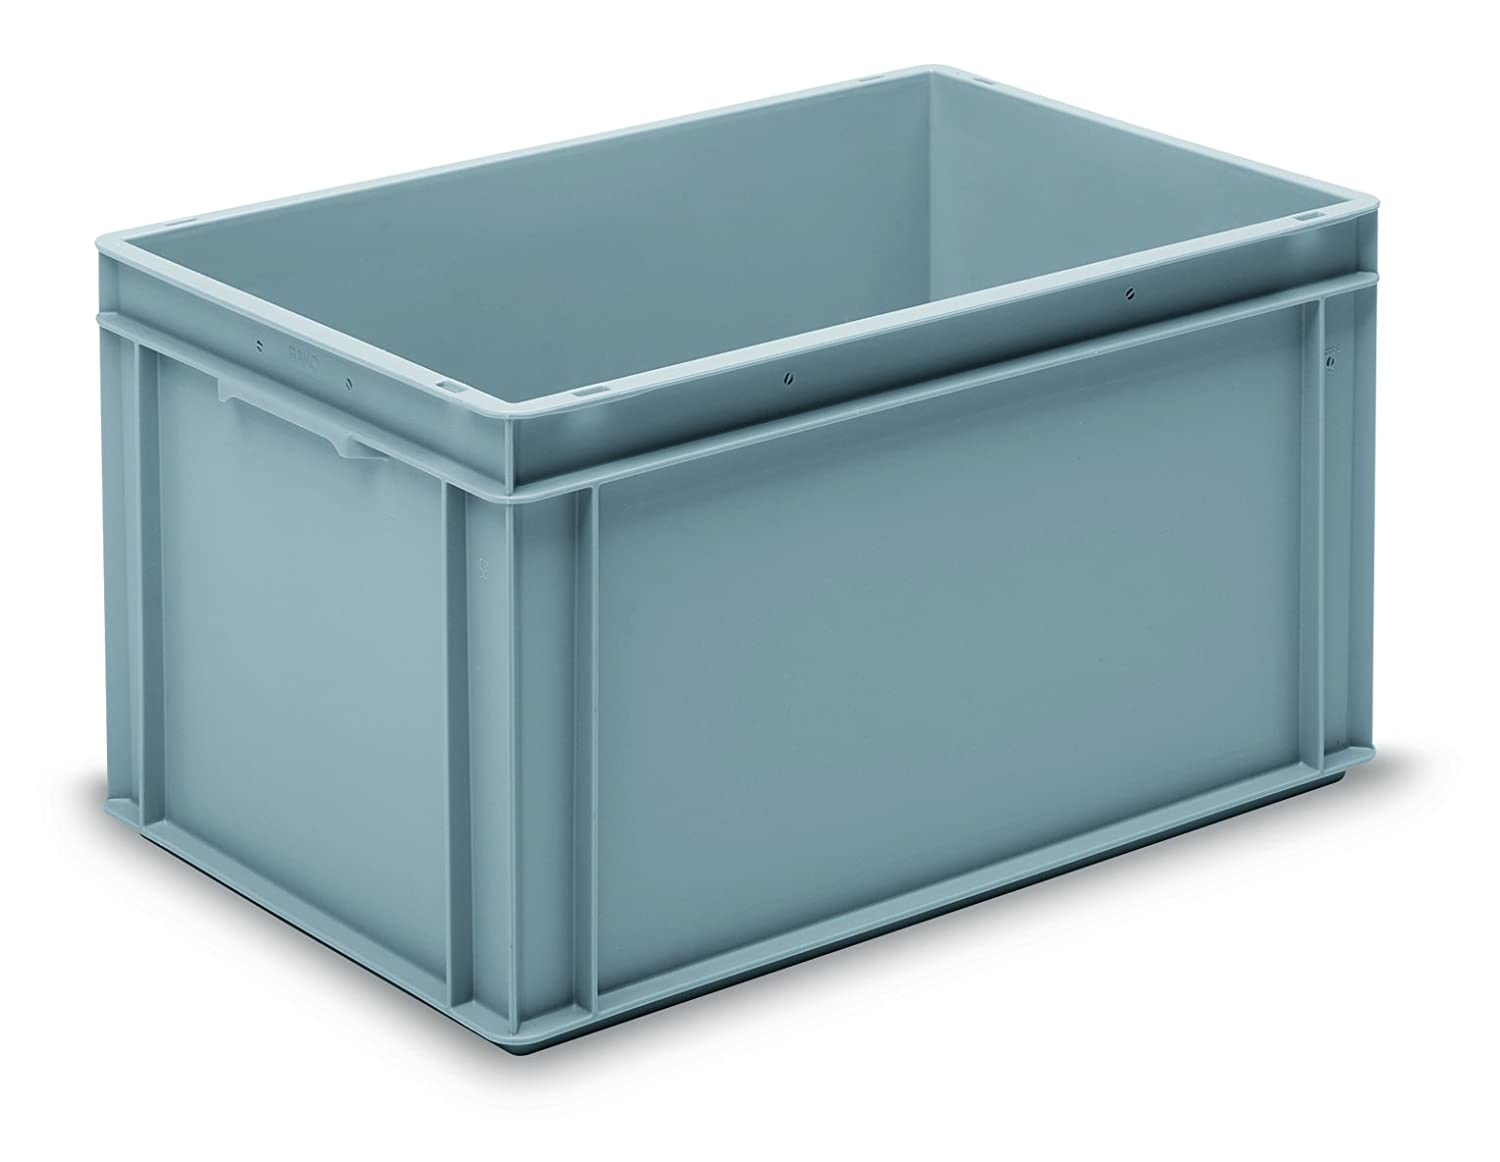 GCIP-RAKO GC604032P Container, Rako, PP, 600 mm x 400 mm x 325 mm, Grey